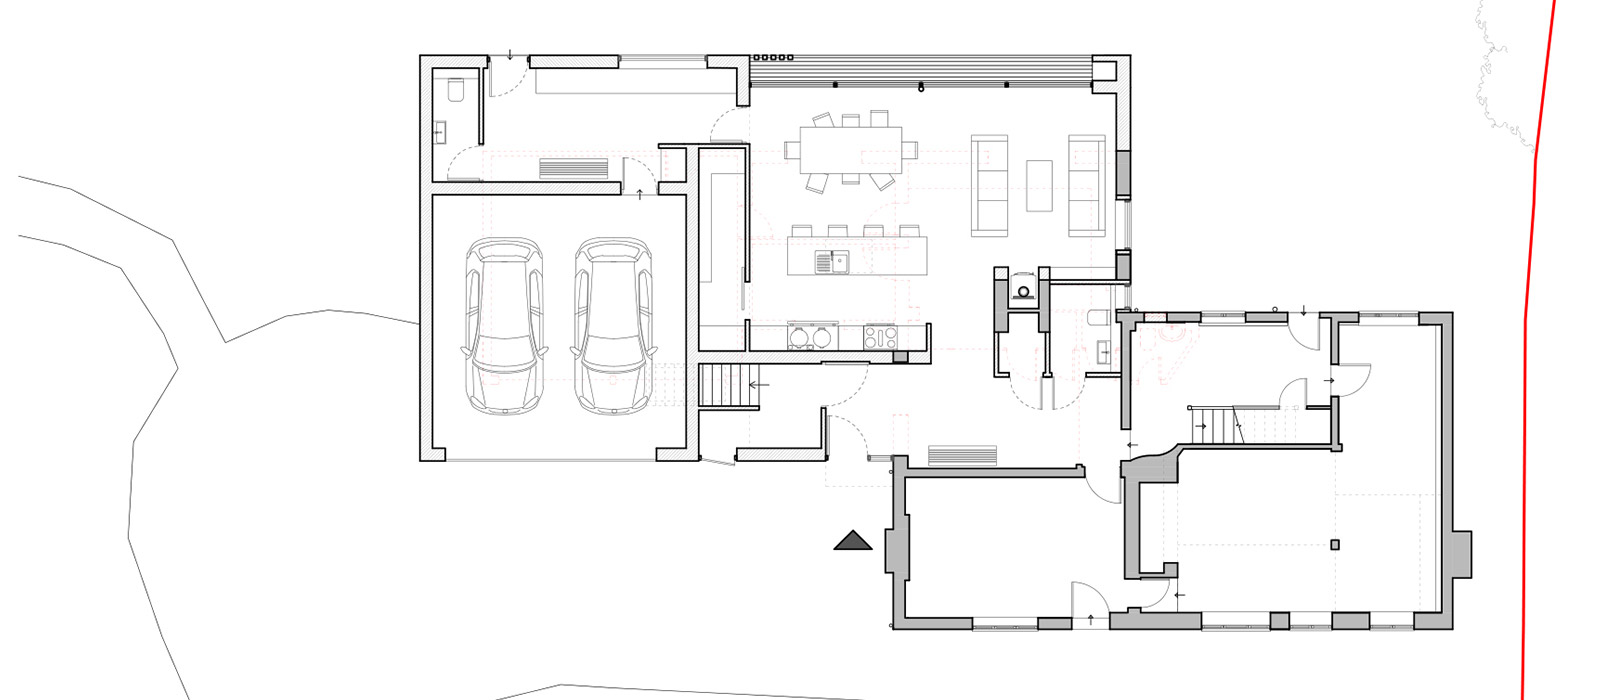 gyd-architecture | Proposed ground floor plan